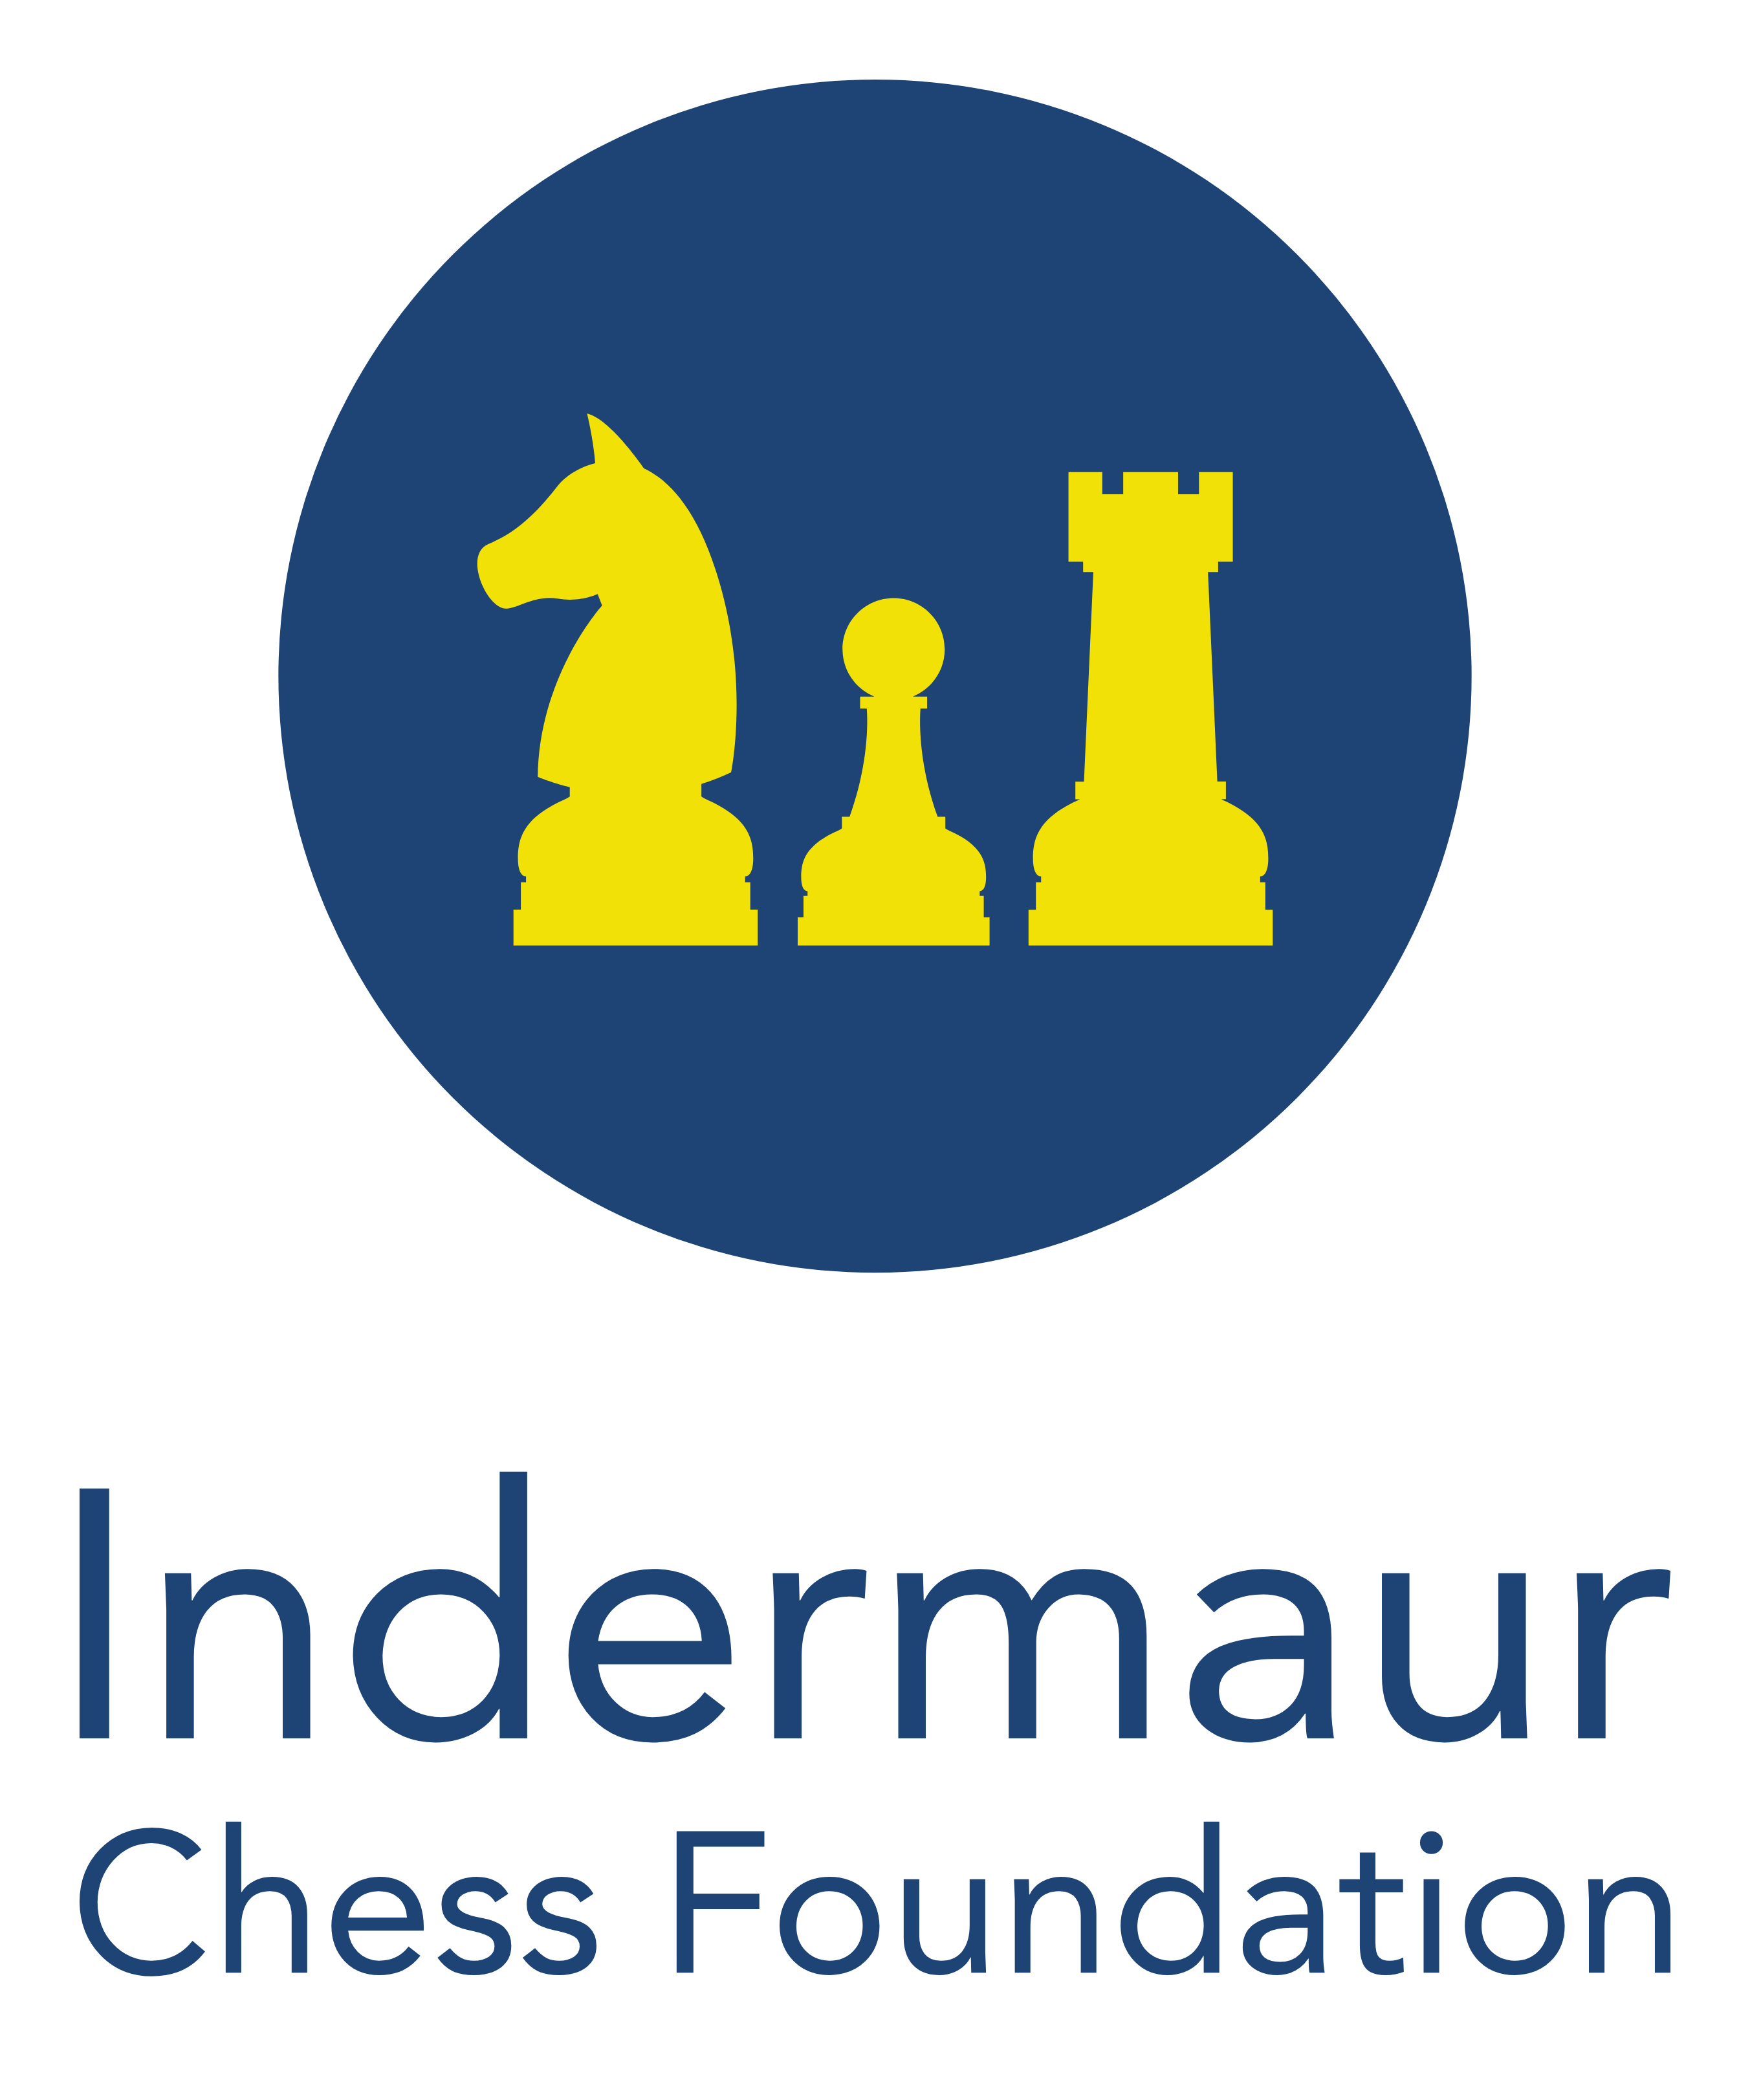 Indermaur Chess Foundation